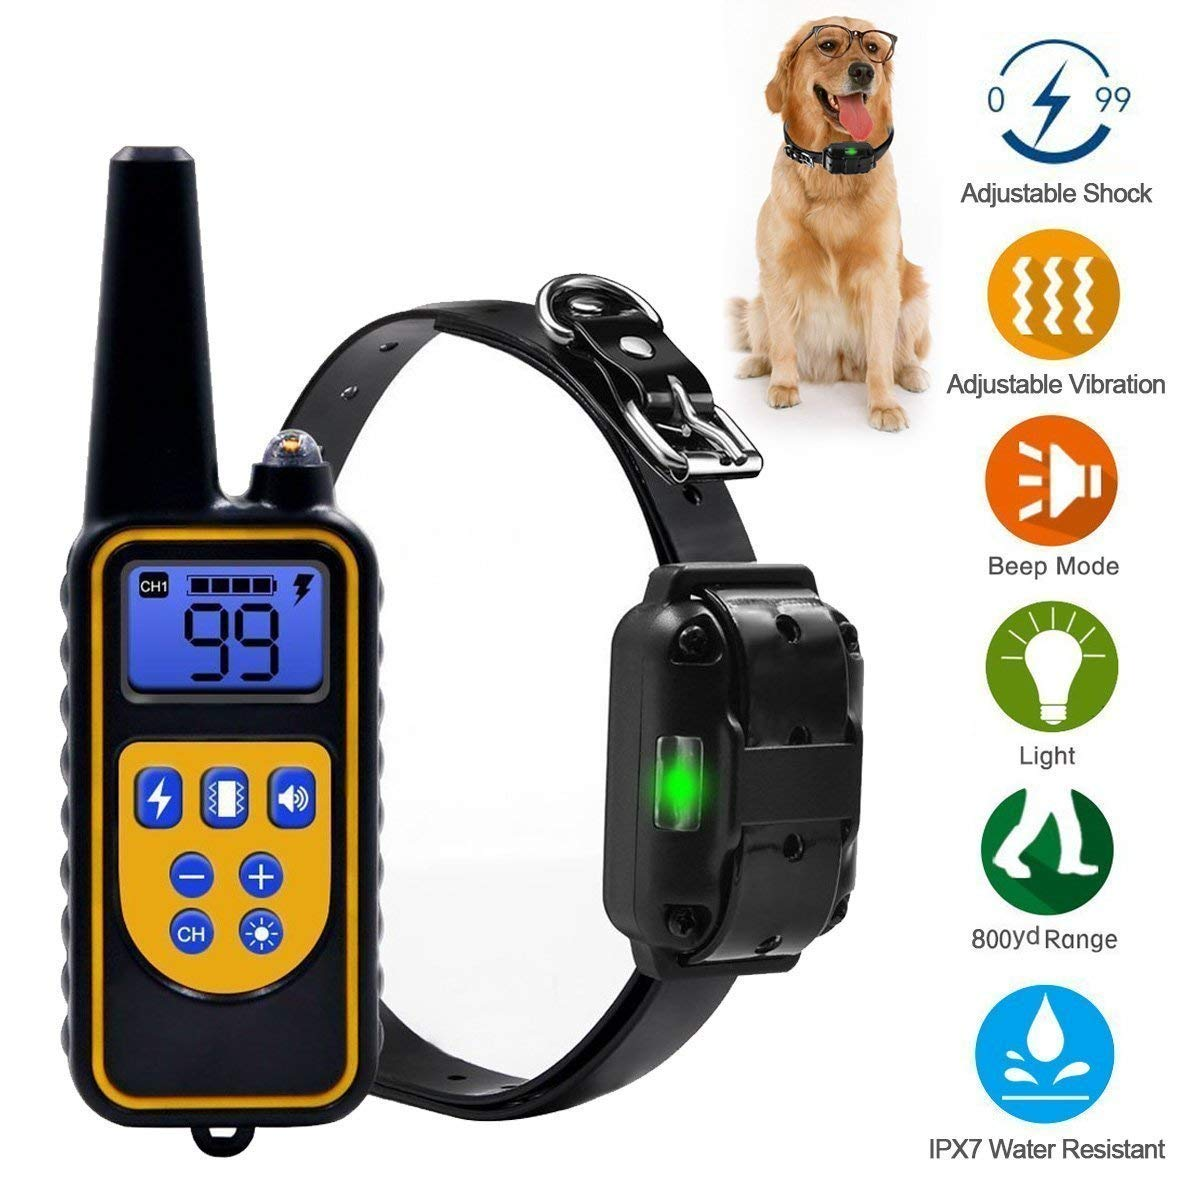 PetDepot Dog training collar with remote Dog Training Collar,Petsky Waterproof and Rechargeable Electric Pet Shock Collar,330 Yards Range Remote with Vibration,